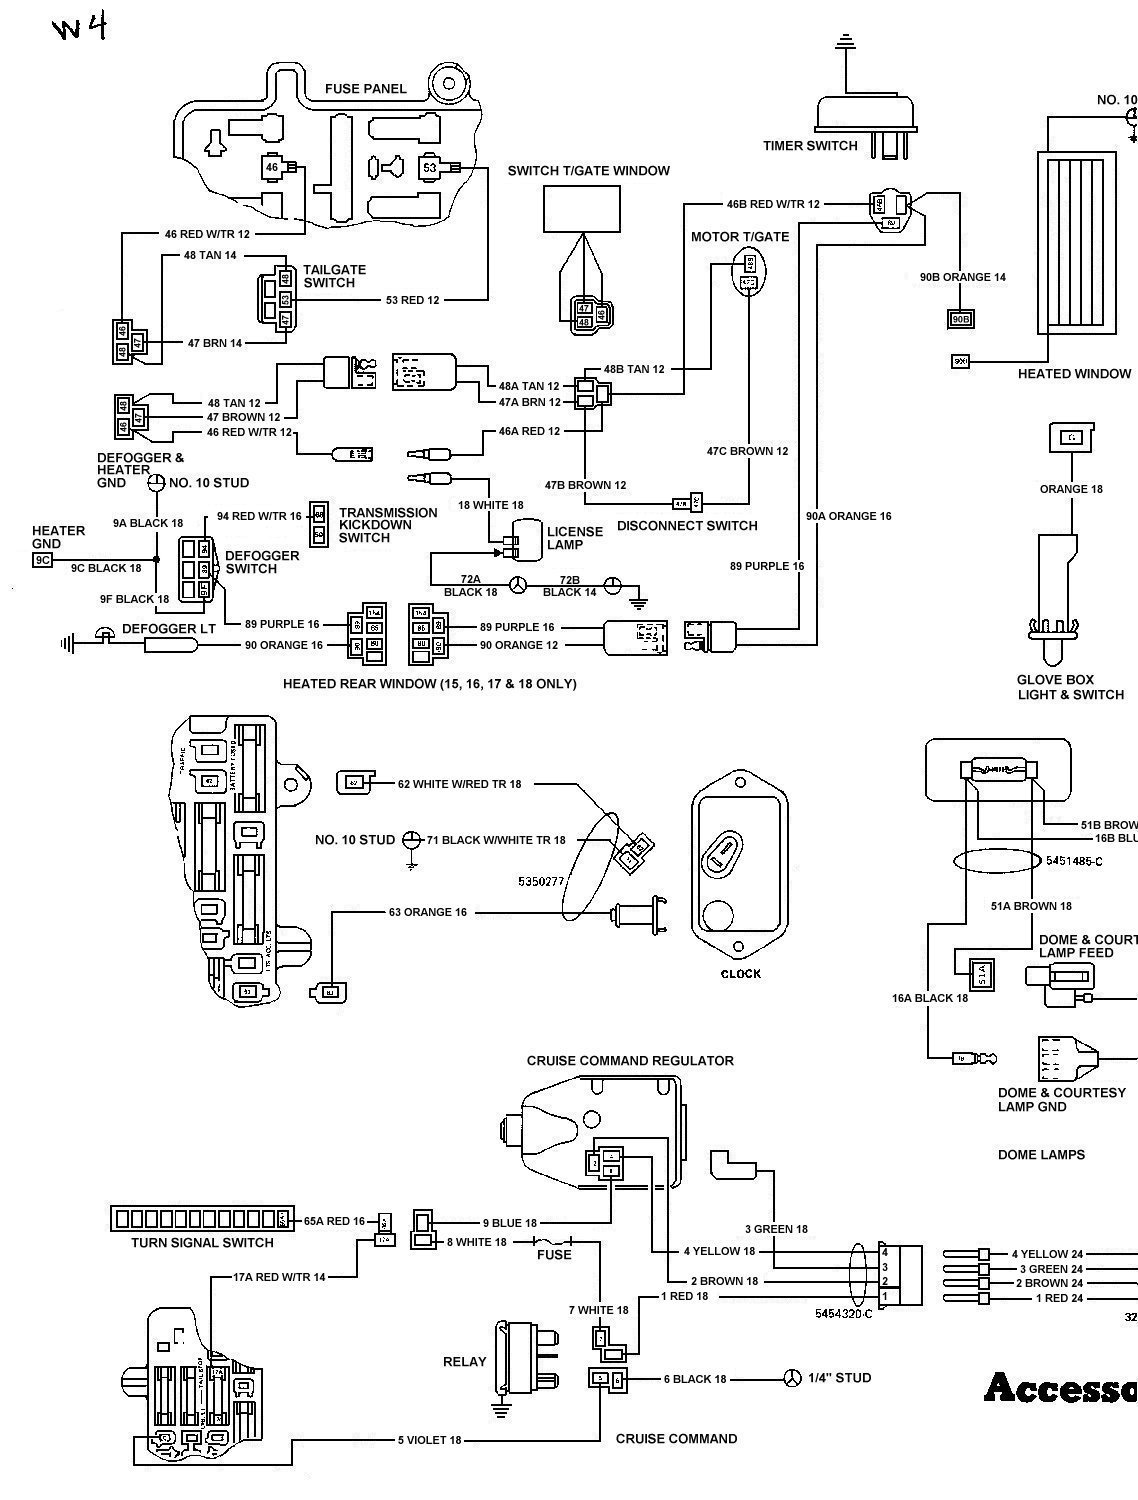 hight resolution of 76 jeep wagoneer wiring diagram free picture wiring diagram third1976 jeep j10 wiring data wiring diagram